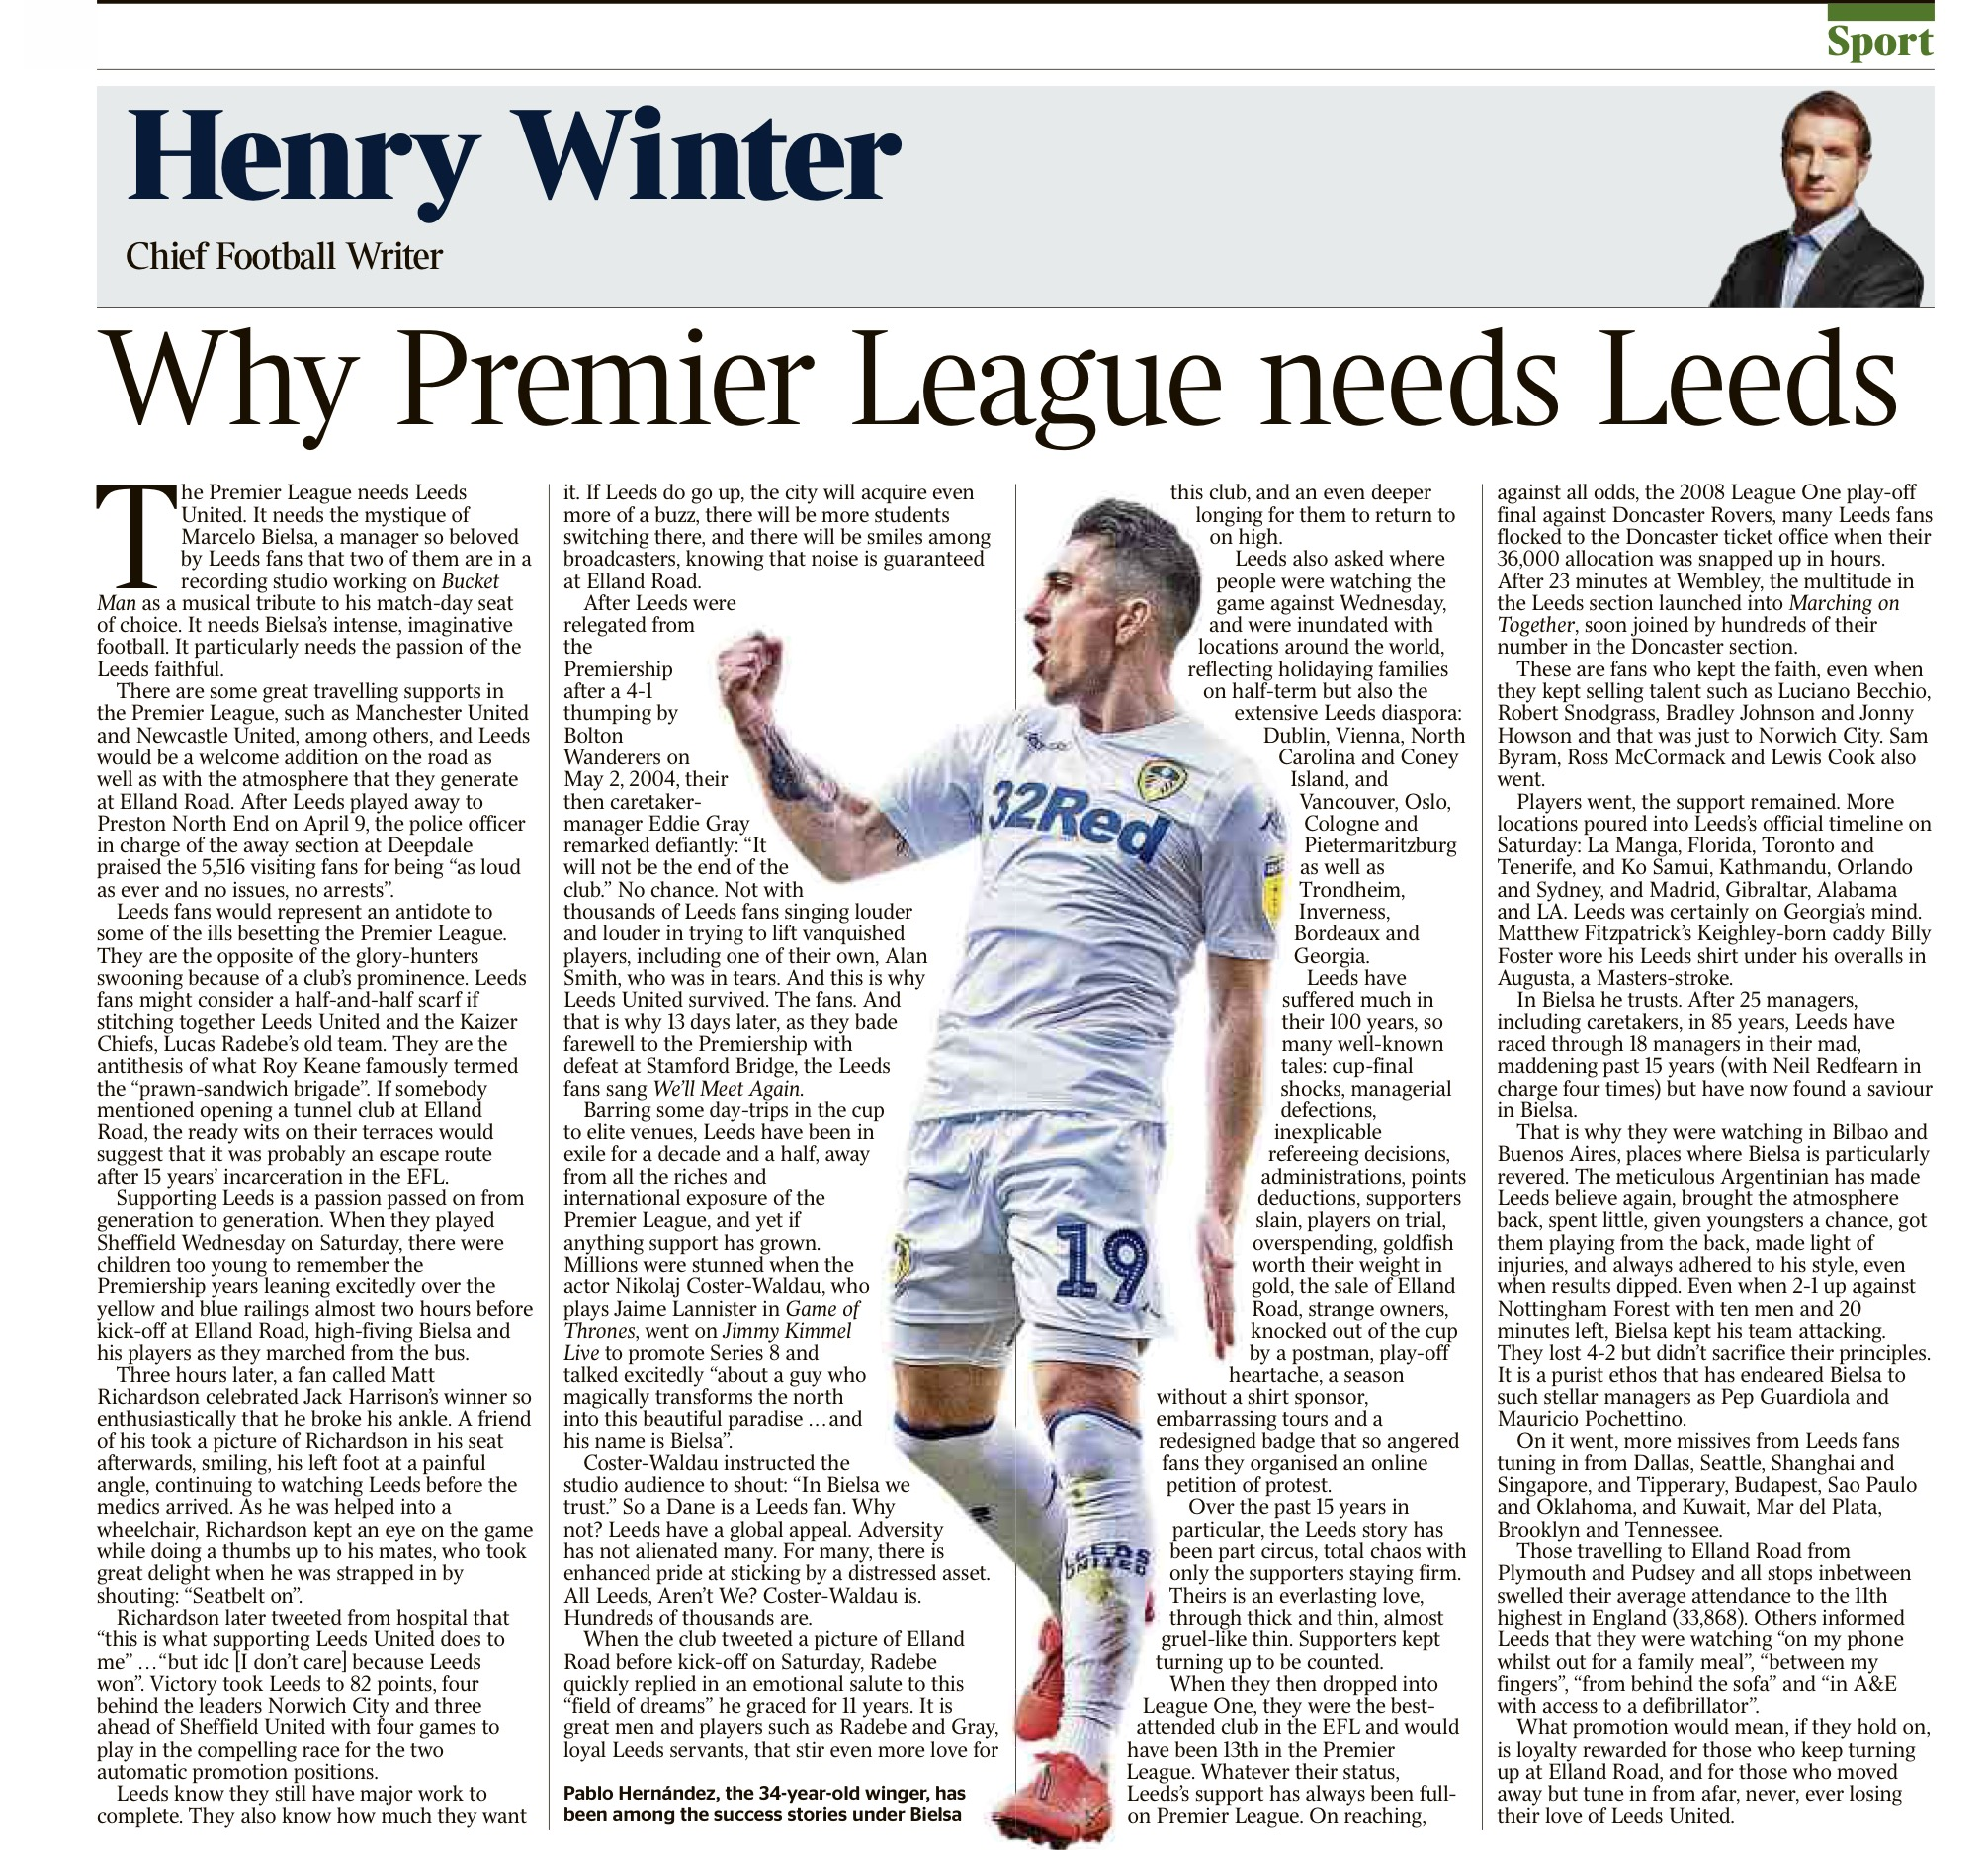 Henry Winter writing in The Times